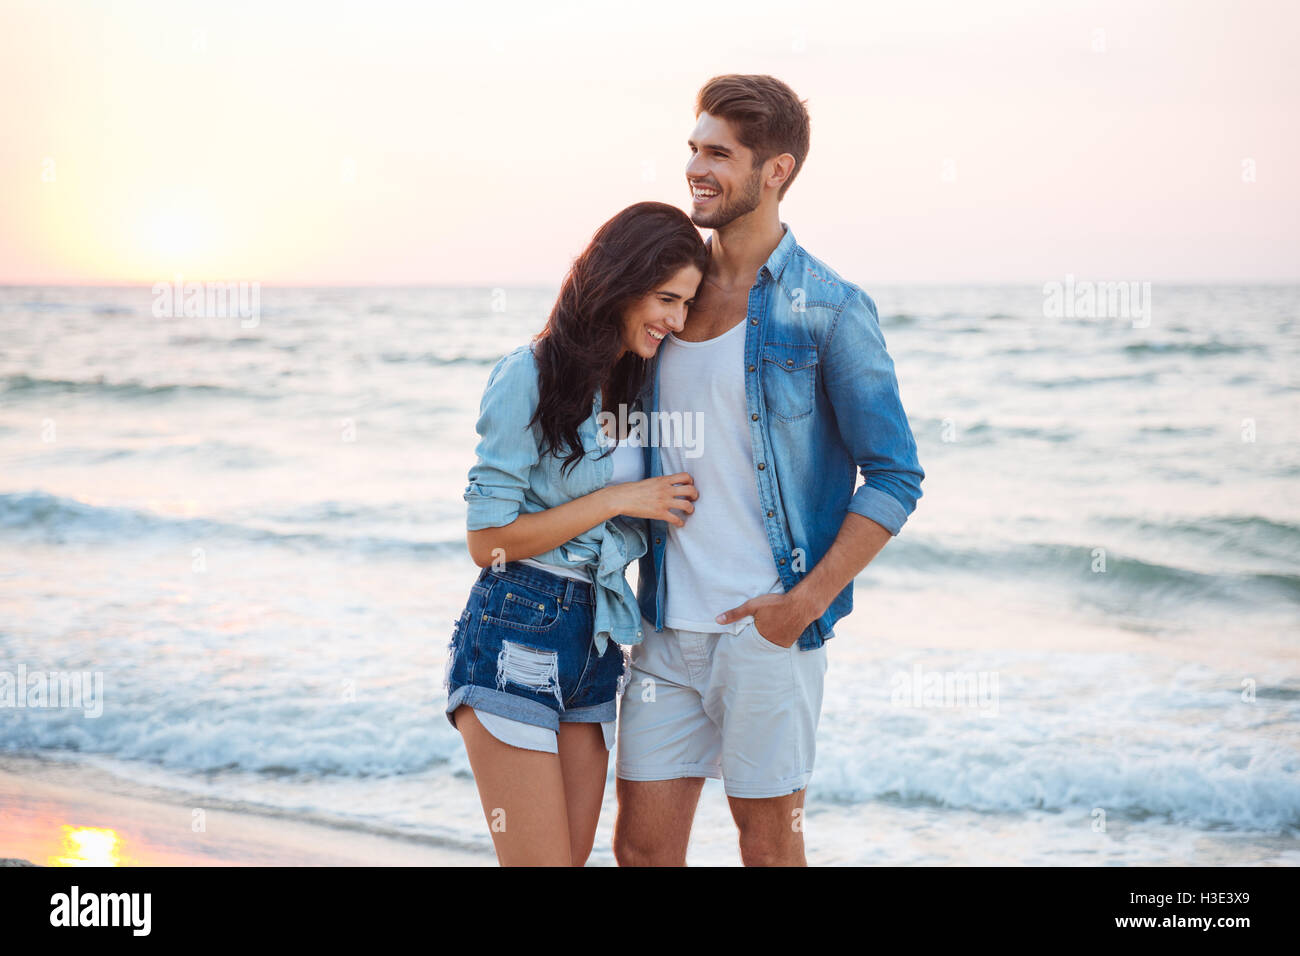 Happy young couple hugging and laughing on the beach - Stock Image